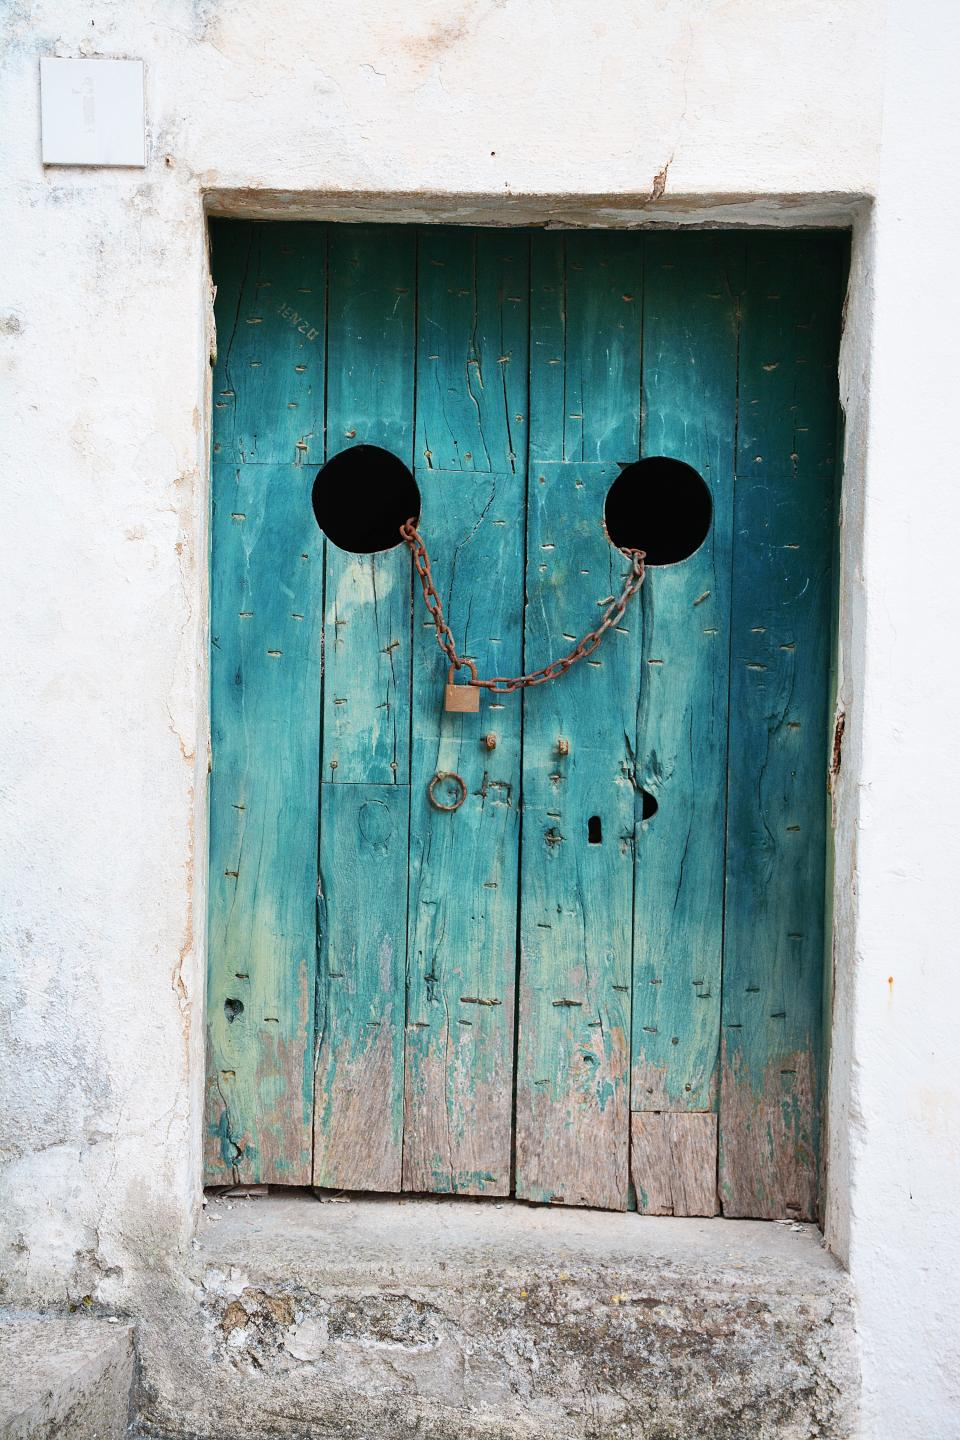 still, items, things, door, wood, panels, vertical, old, decrepit, holes, chains, lock, square, rectangles, teal, brown, rugged, grunge, minimalist